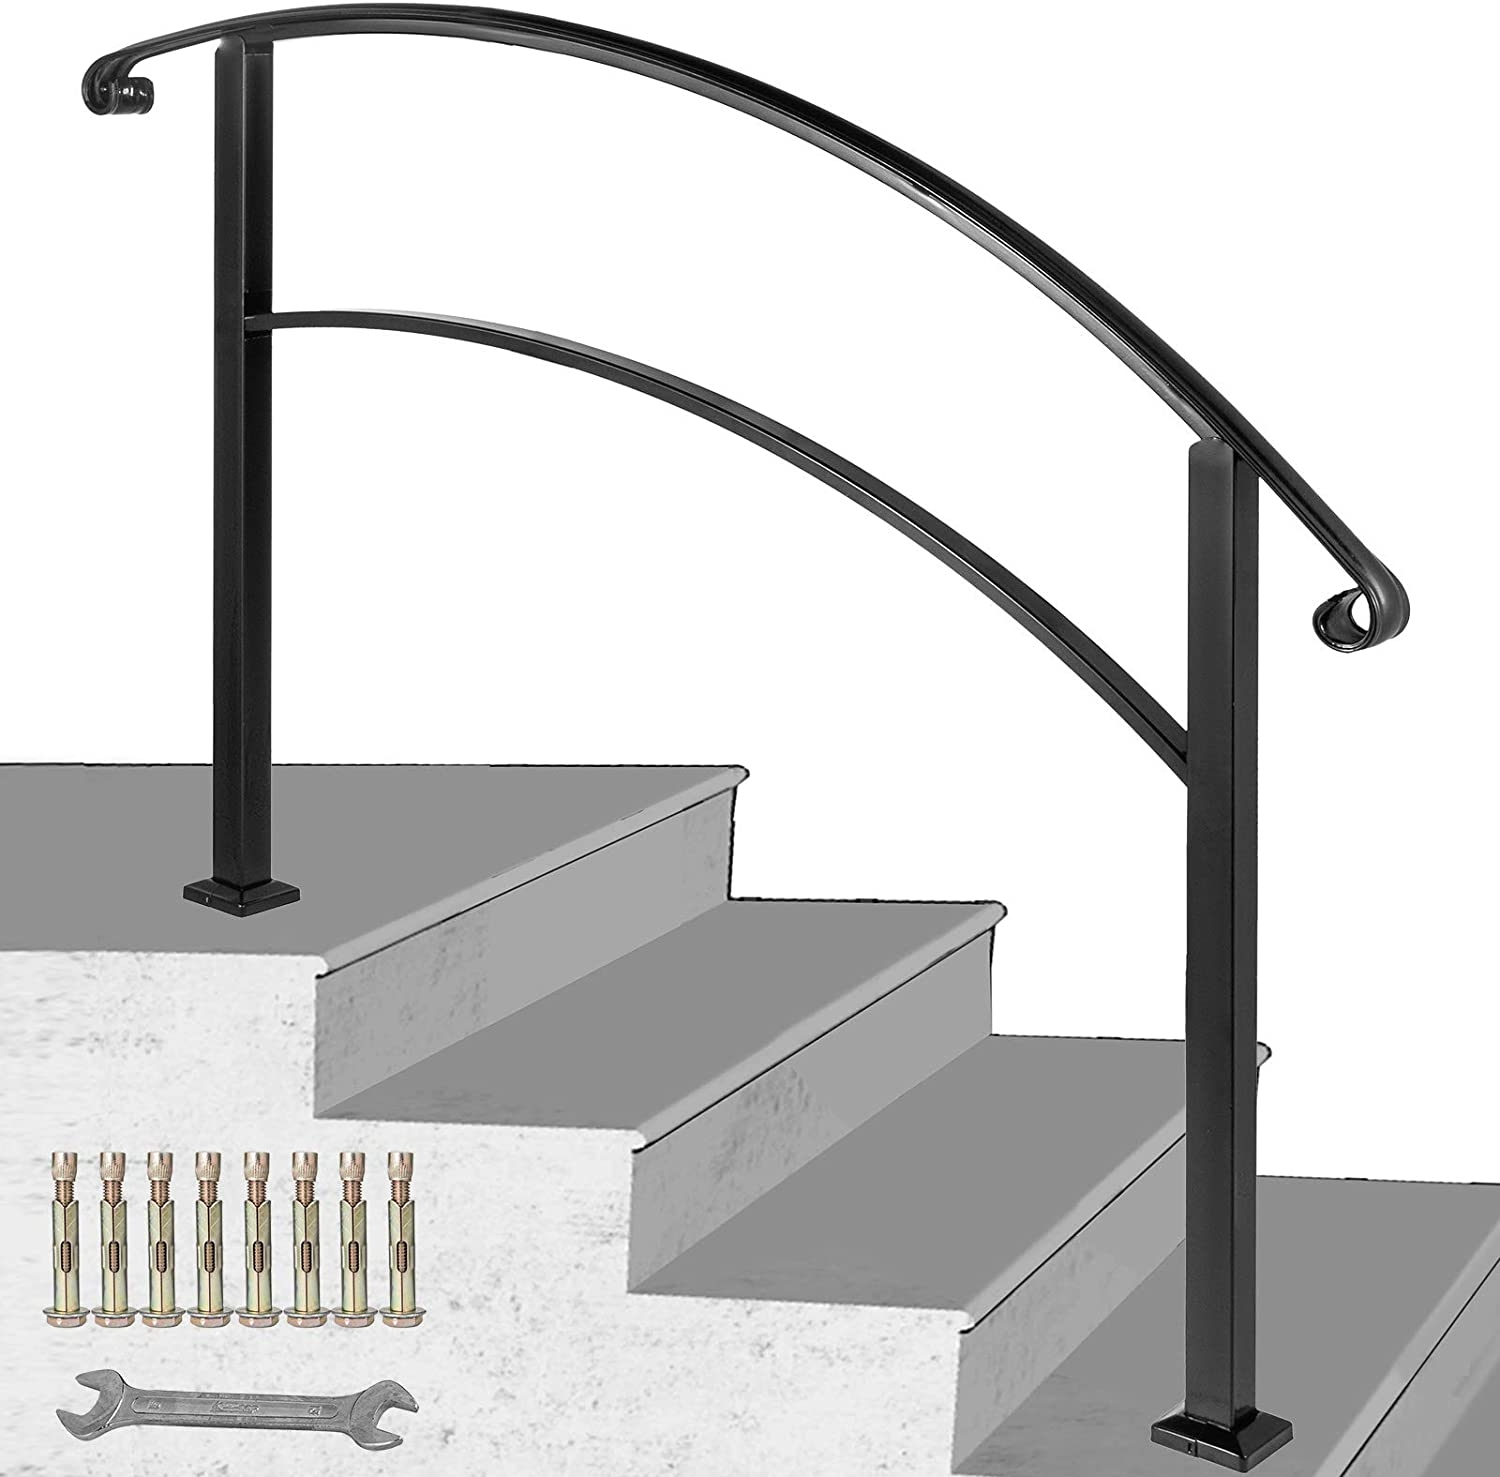 Happybuy 4 Step Handrail Fits 1 Or 4 Steps Matte Black Stair Rail   Iron Handrails For Steps   Hand   Iron Railing   Iron Picket   Craftsman Style   Double Storey House